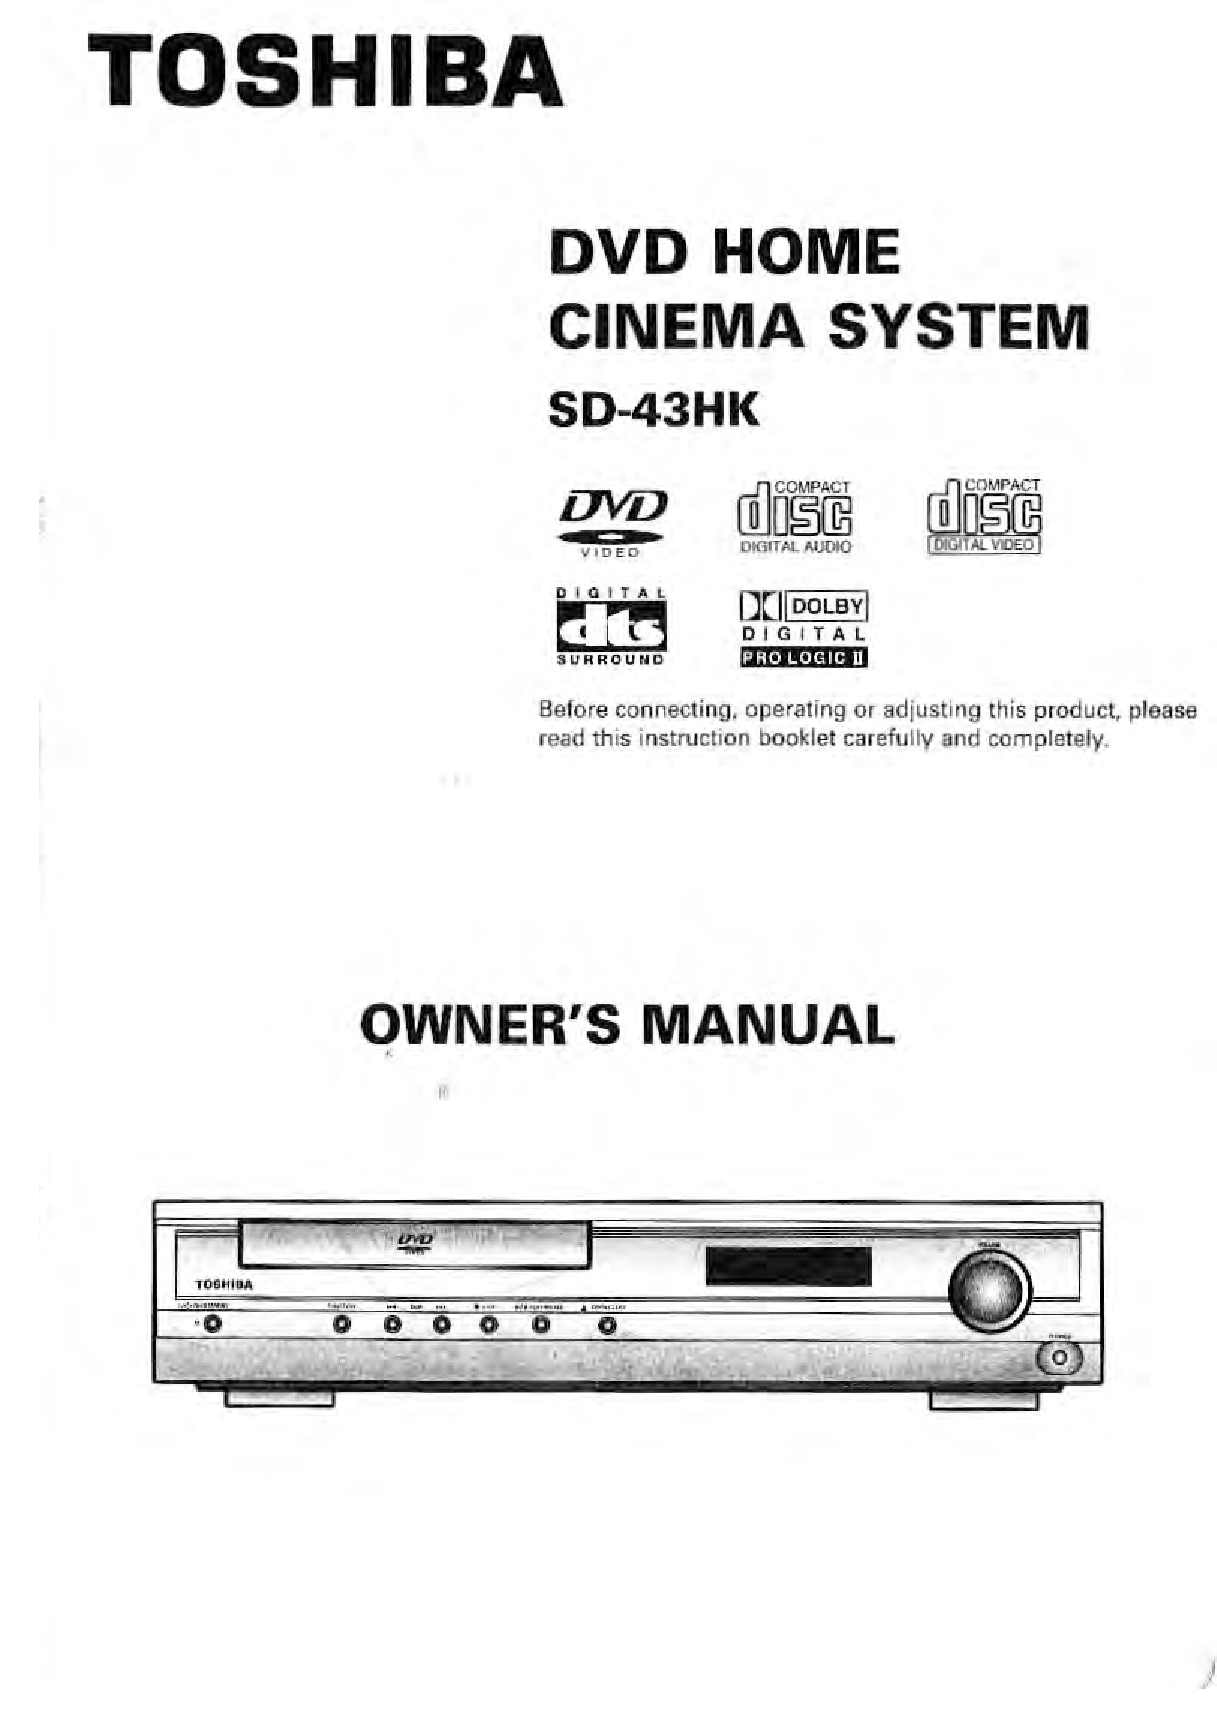 Toshiba SD-43HK Owner Manual